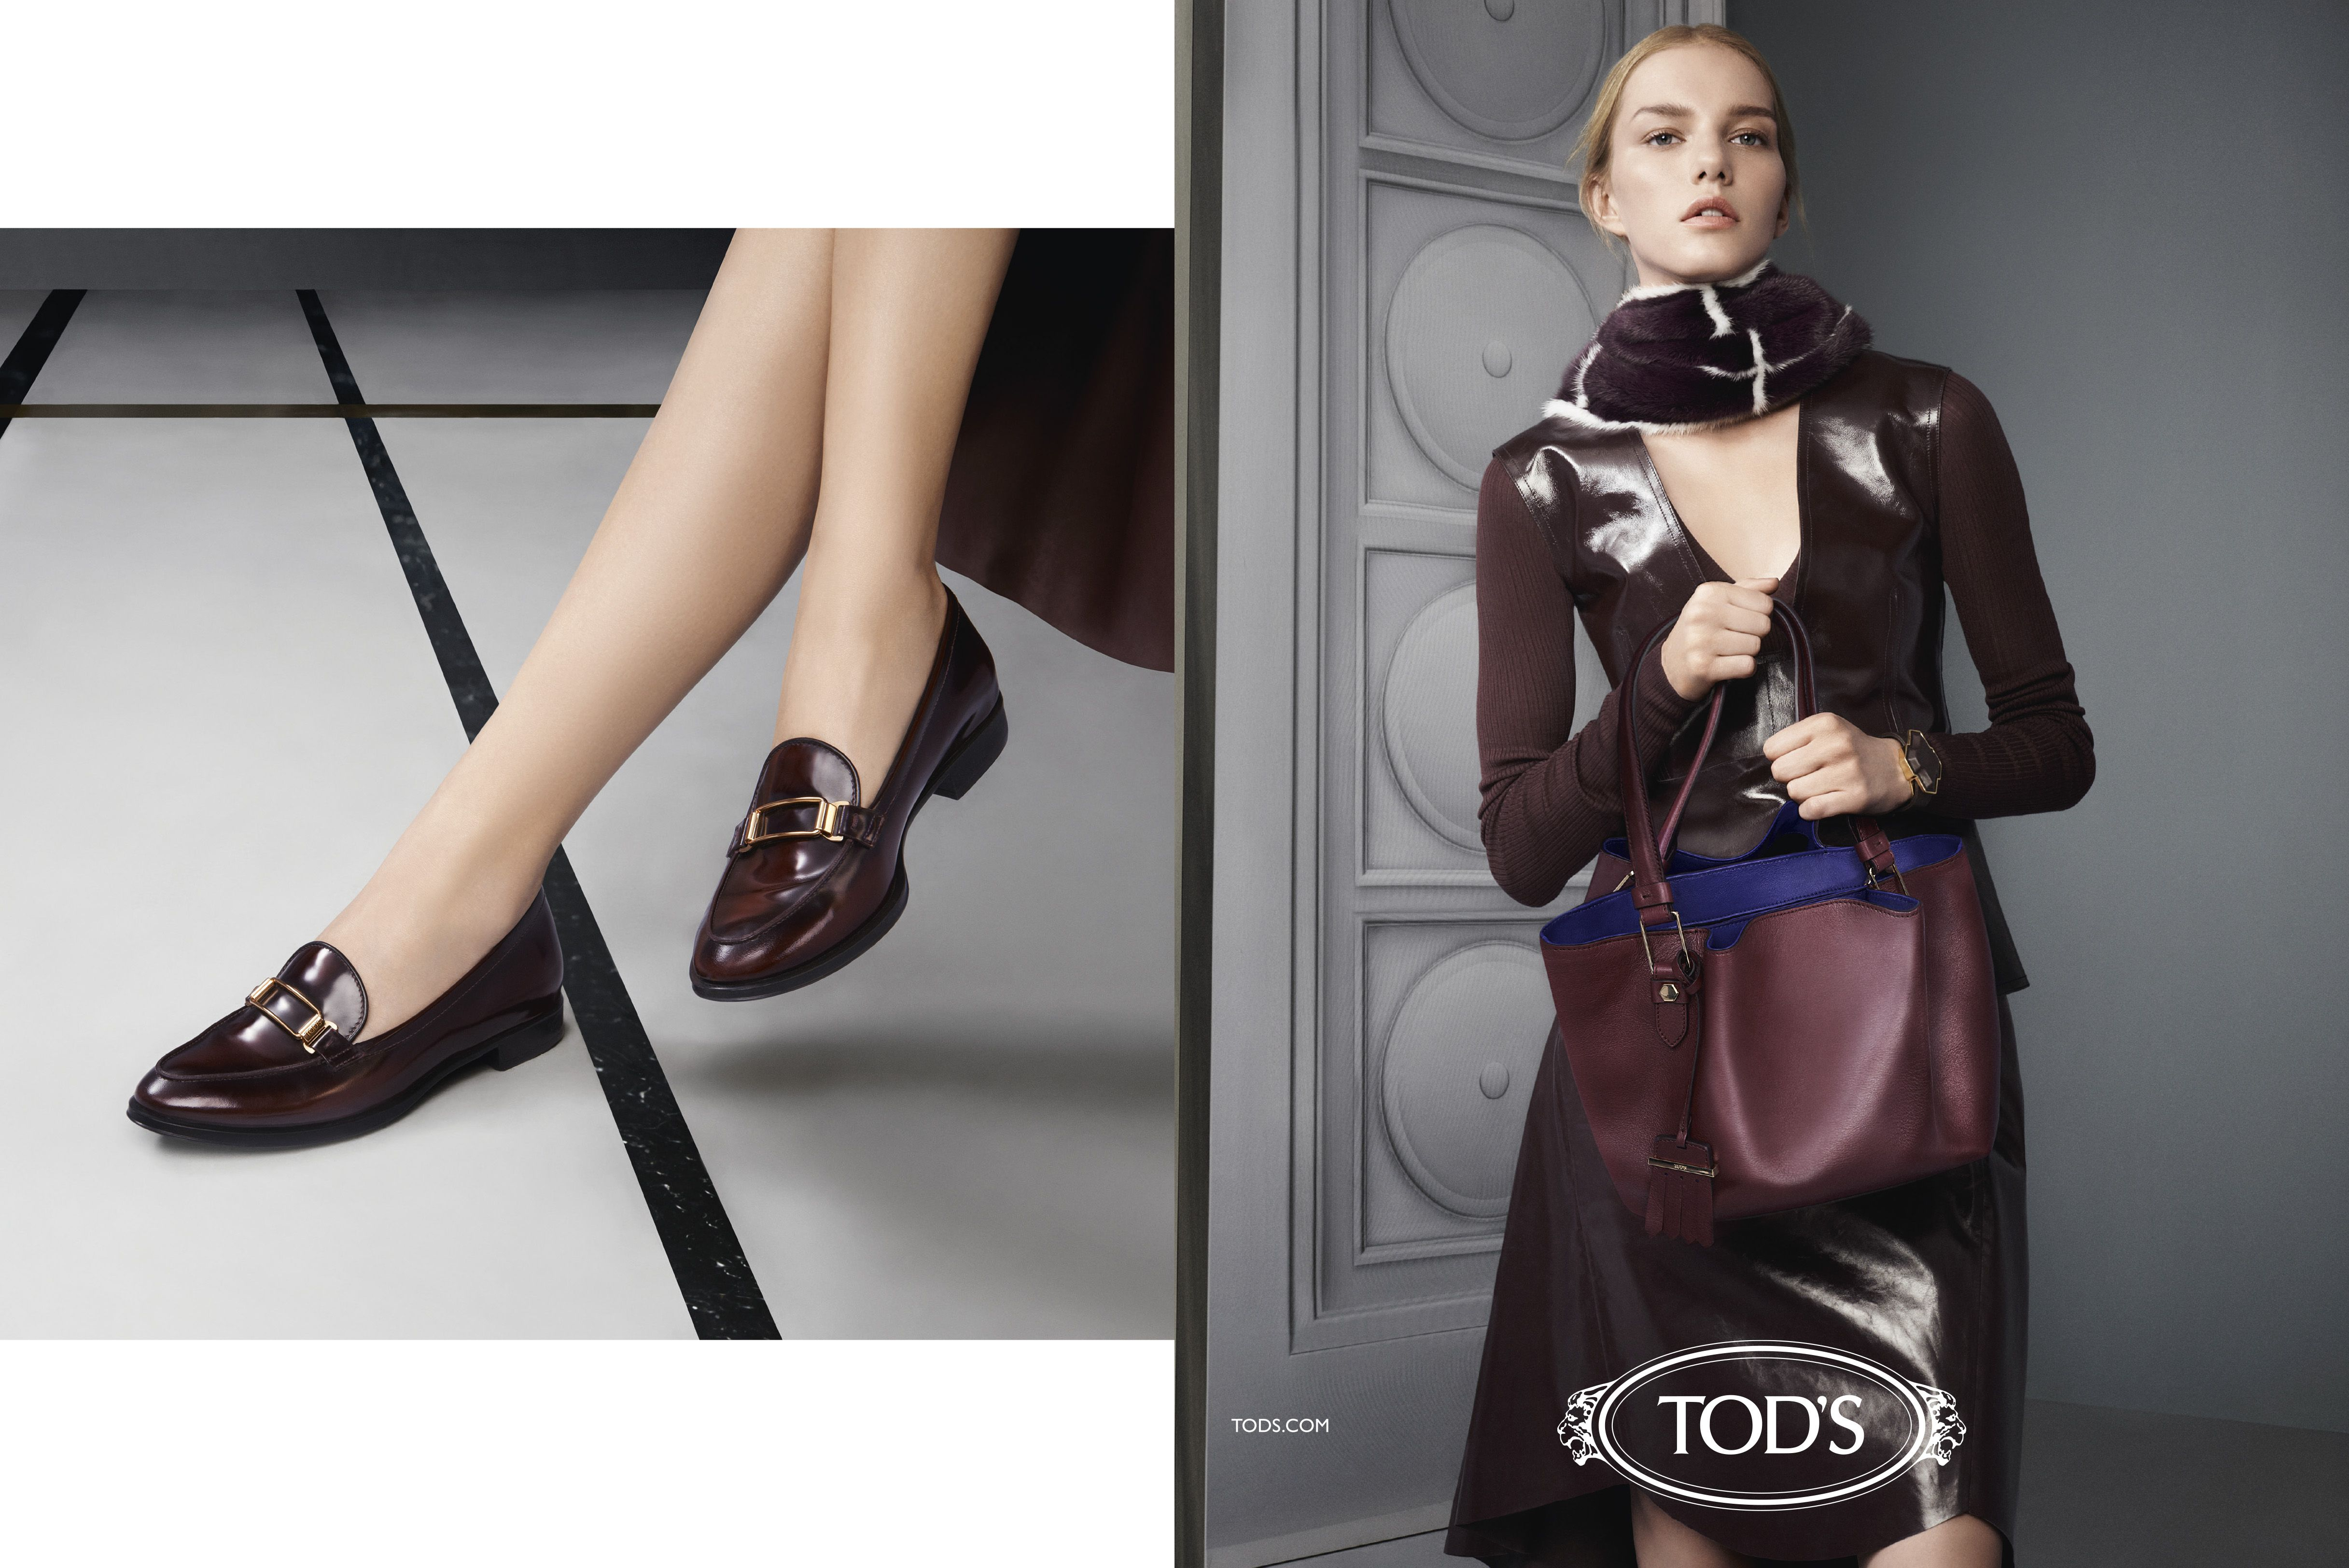 Tod's Women's Fall/Winter 2015 Campaign #tods #fw15 # ...